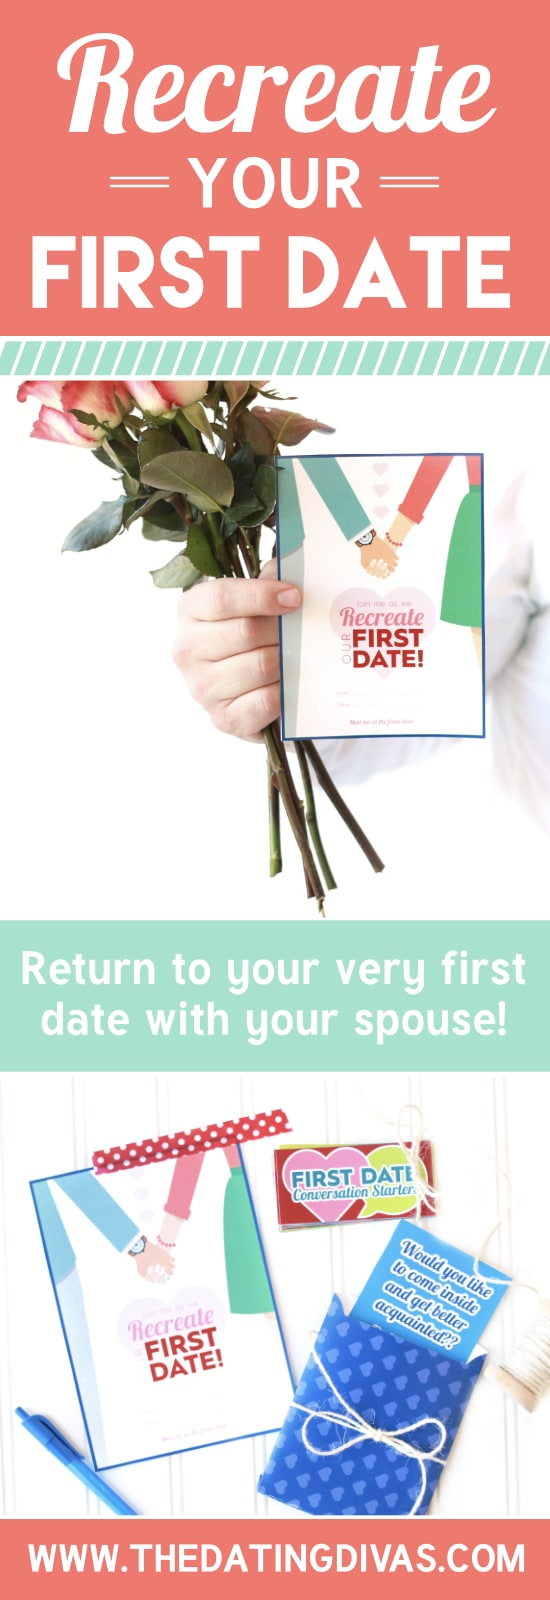 Recreate Your First Date with your Spouse